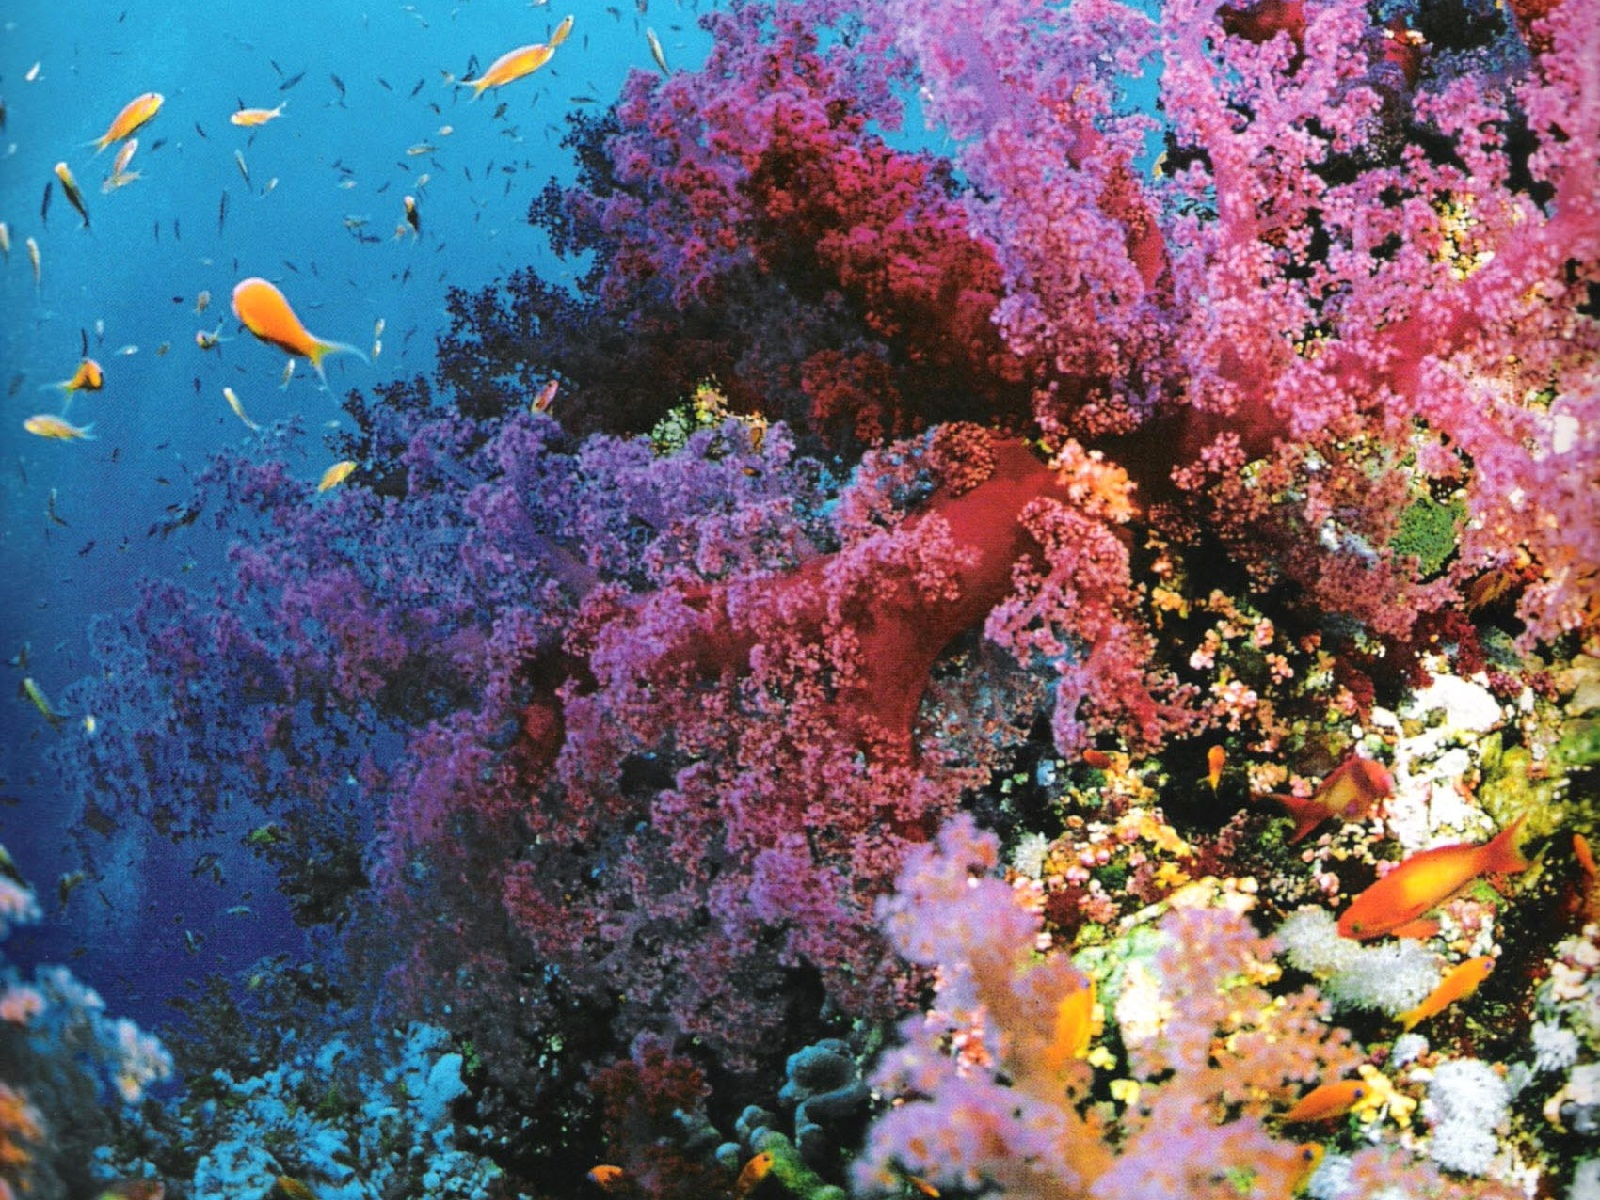 Great Barrier Reef, Australia, Corals and fish02